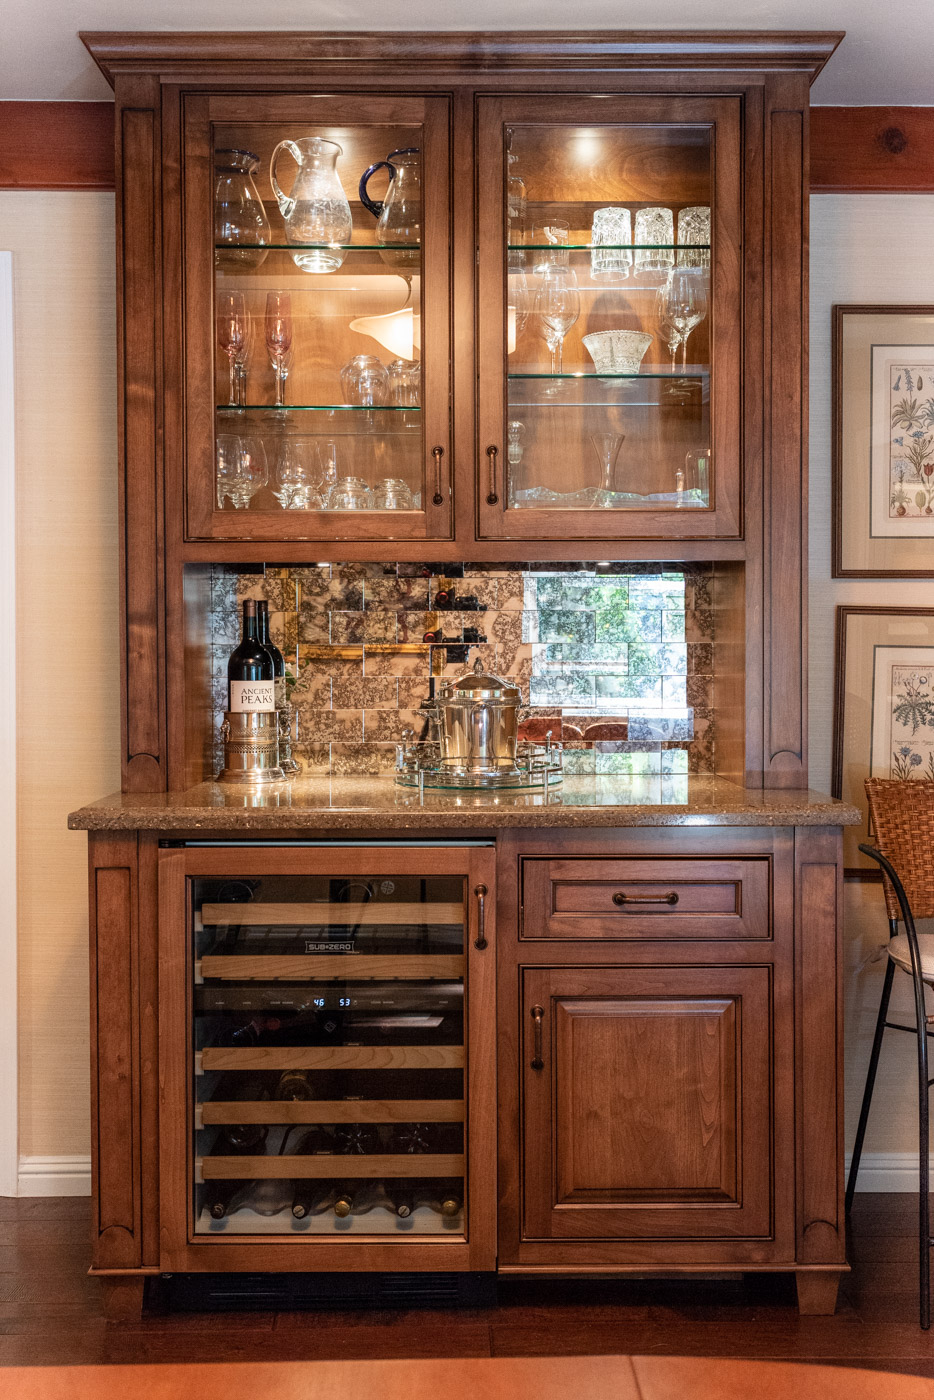 English Country custom home bar with glass display cabinets and wine fridge